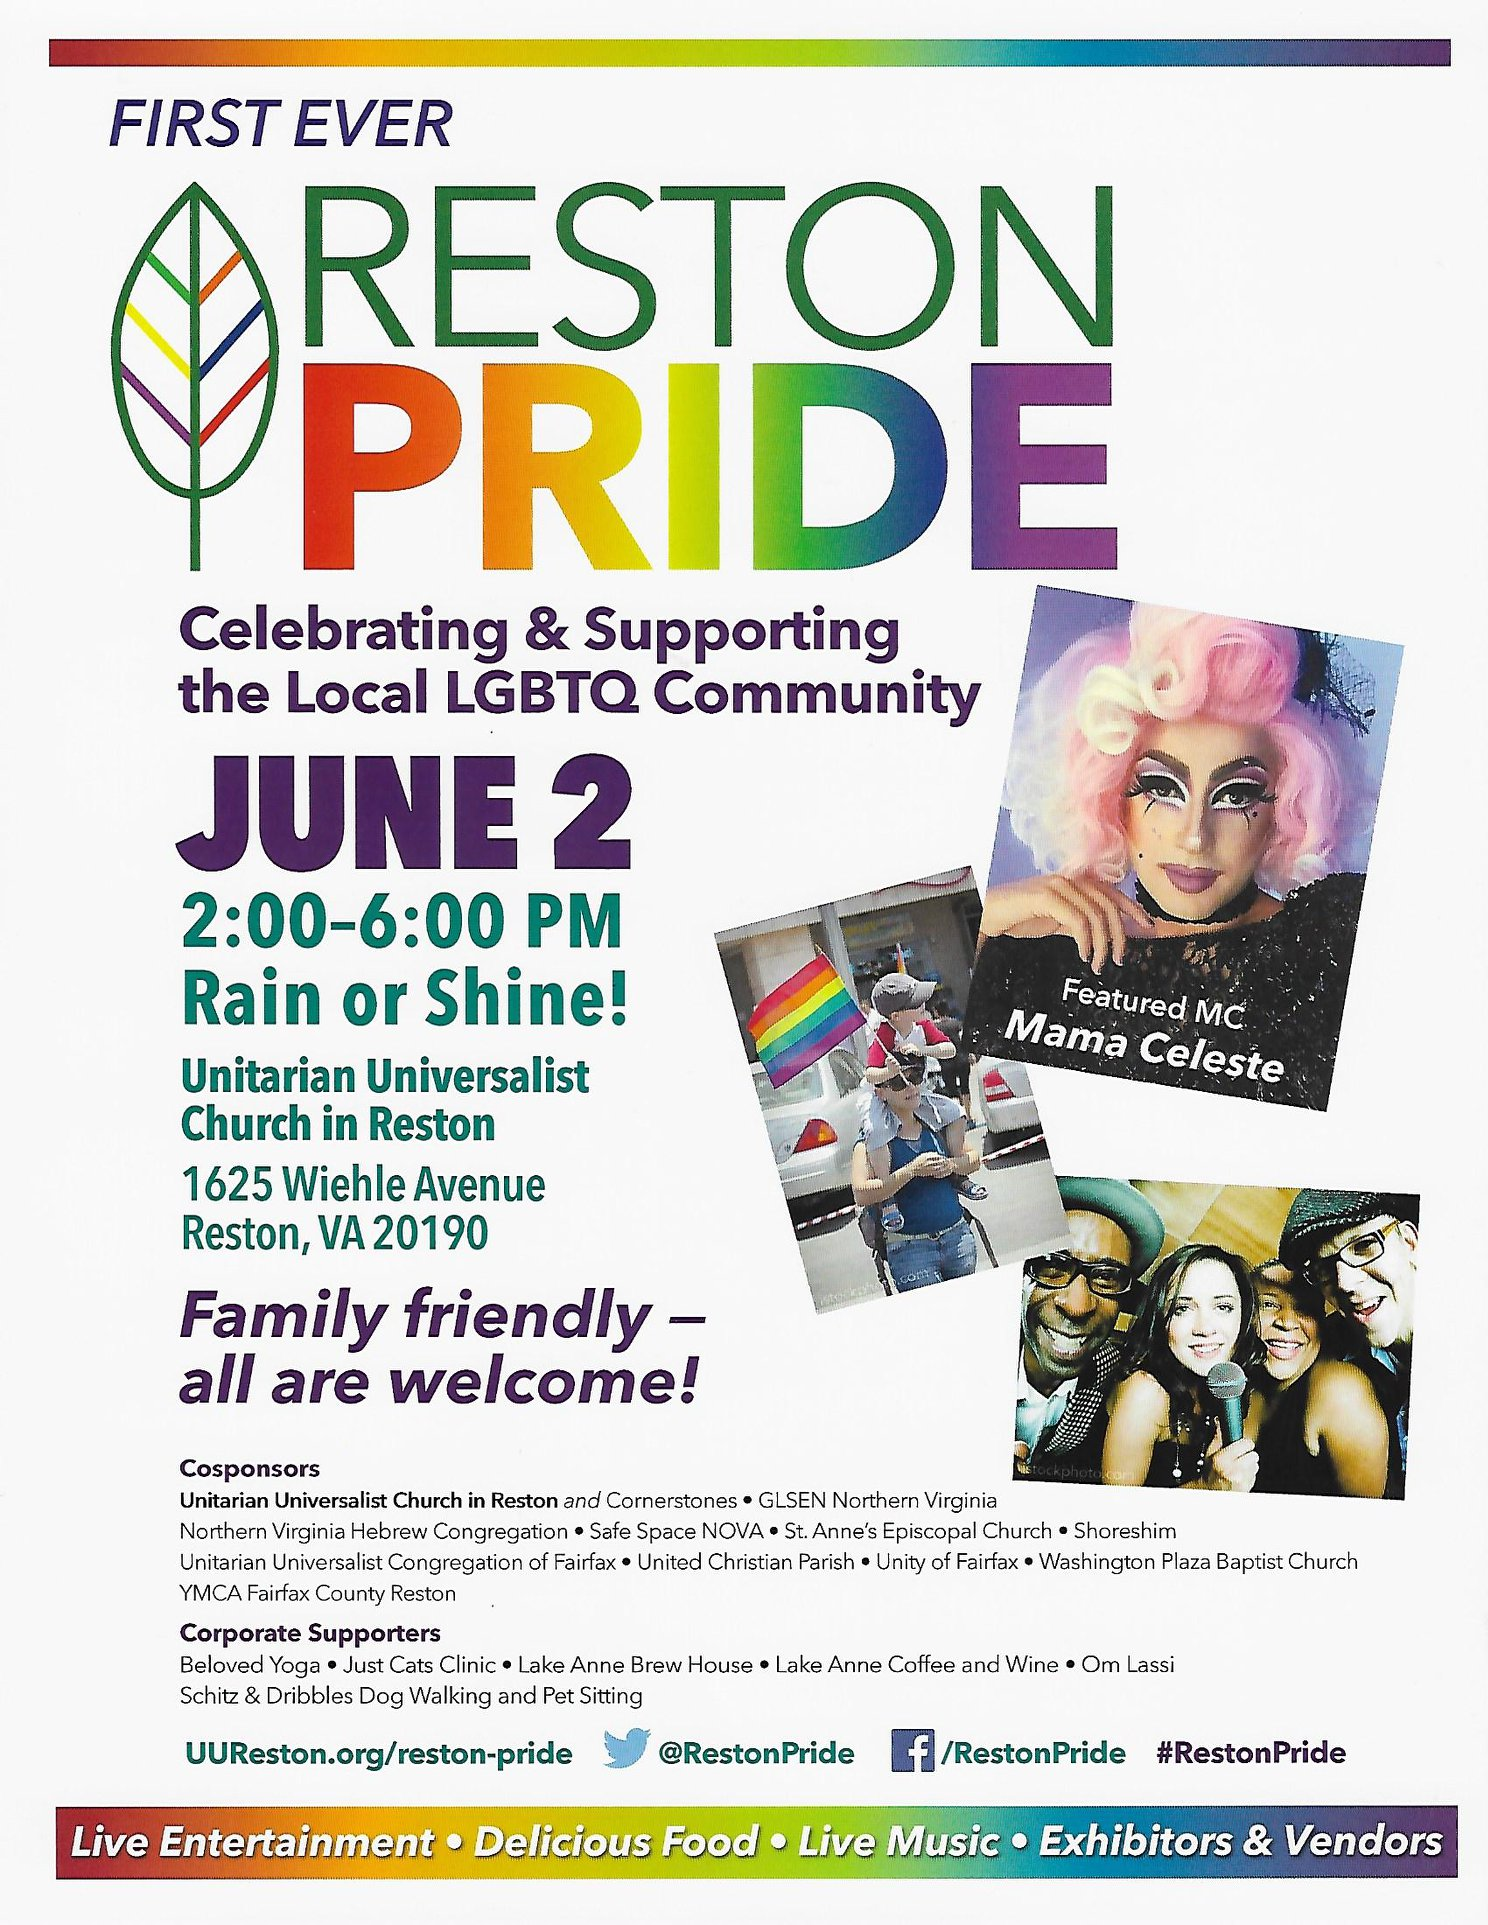 The first ever Reston Pride!